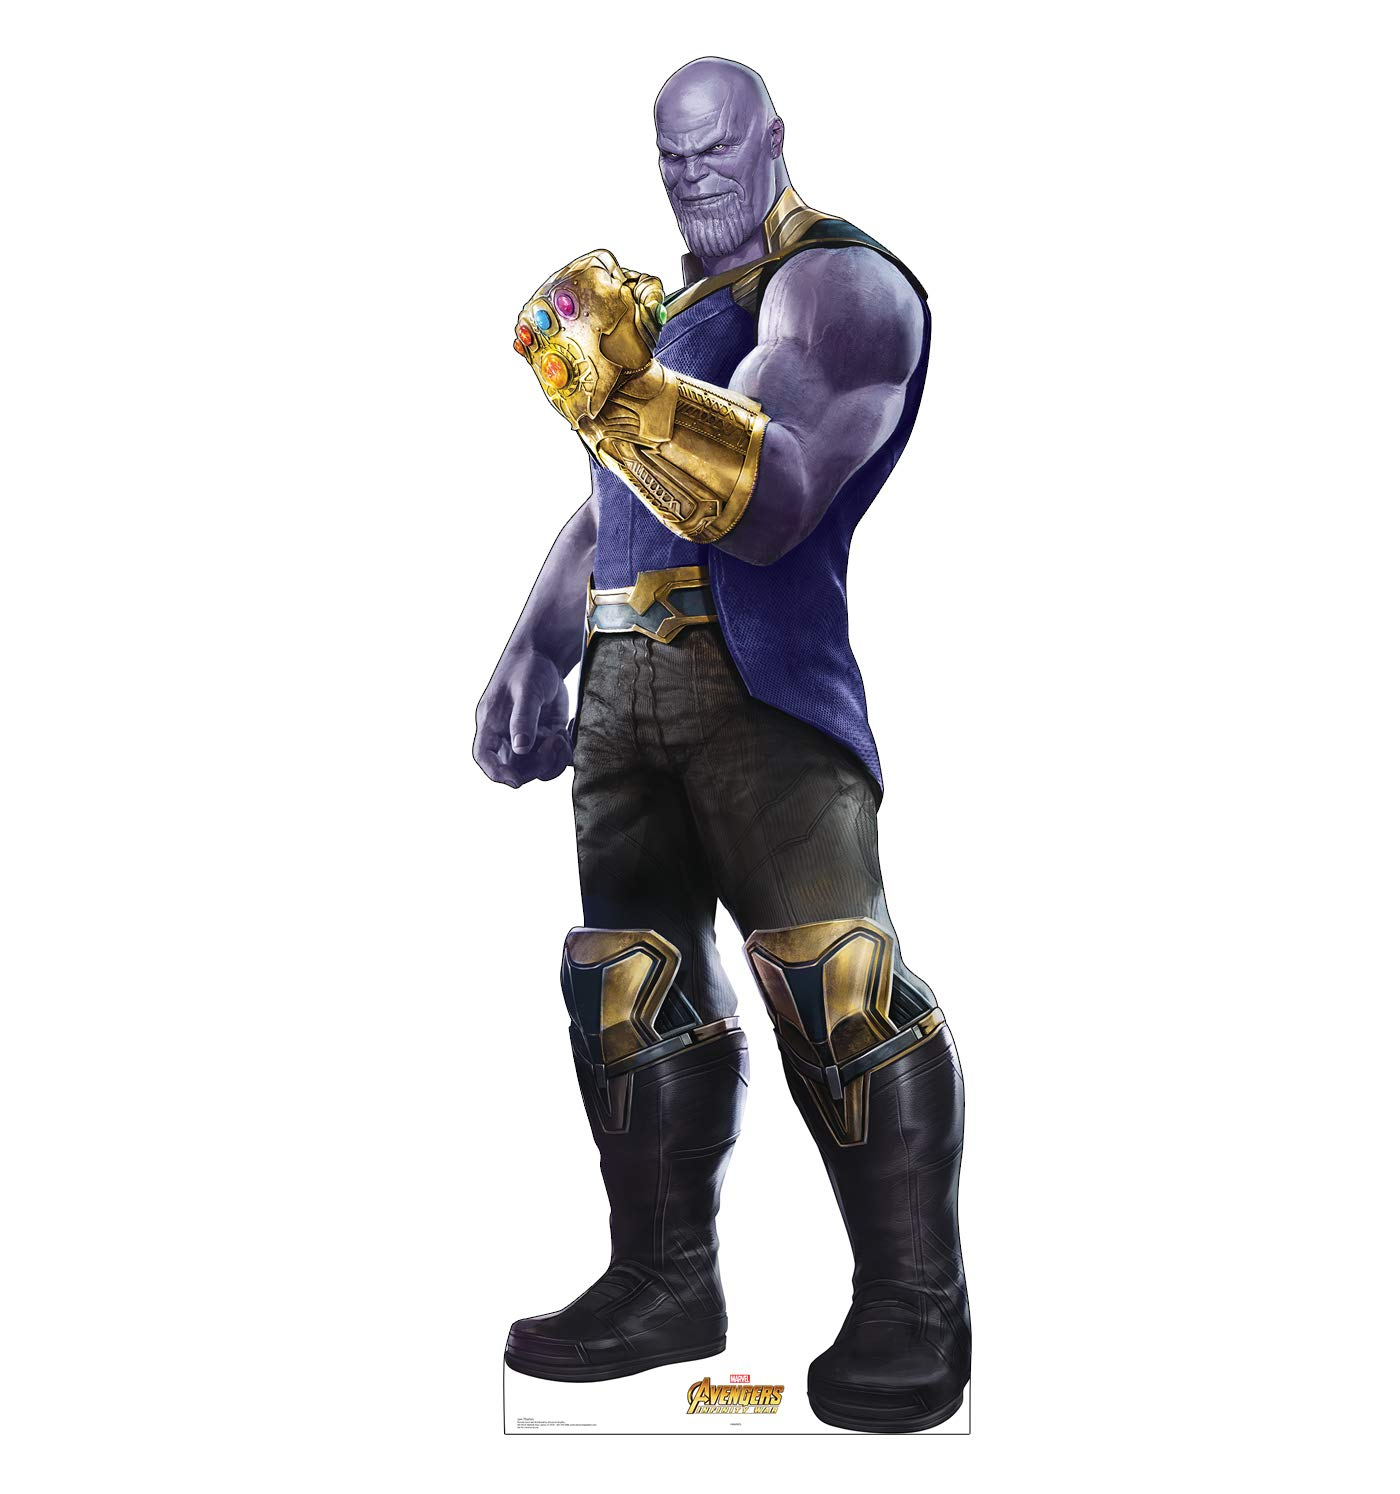 Advanced Graphics Thanos Life Size Cardboard Cutout Standup - Marvel's Avengers: Infinity War (2018 Film) by Advanced Graphics